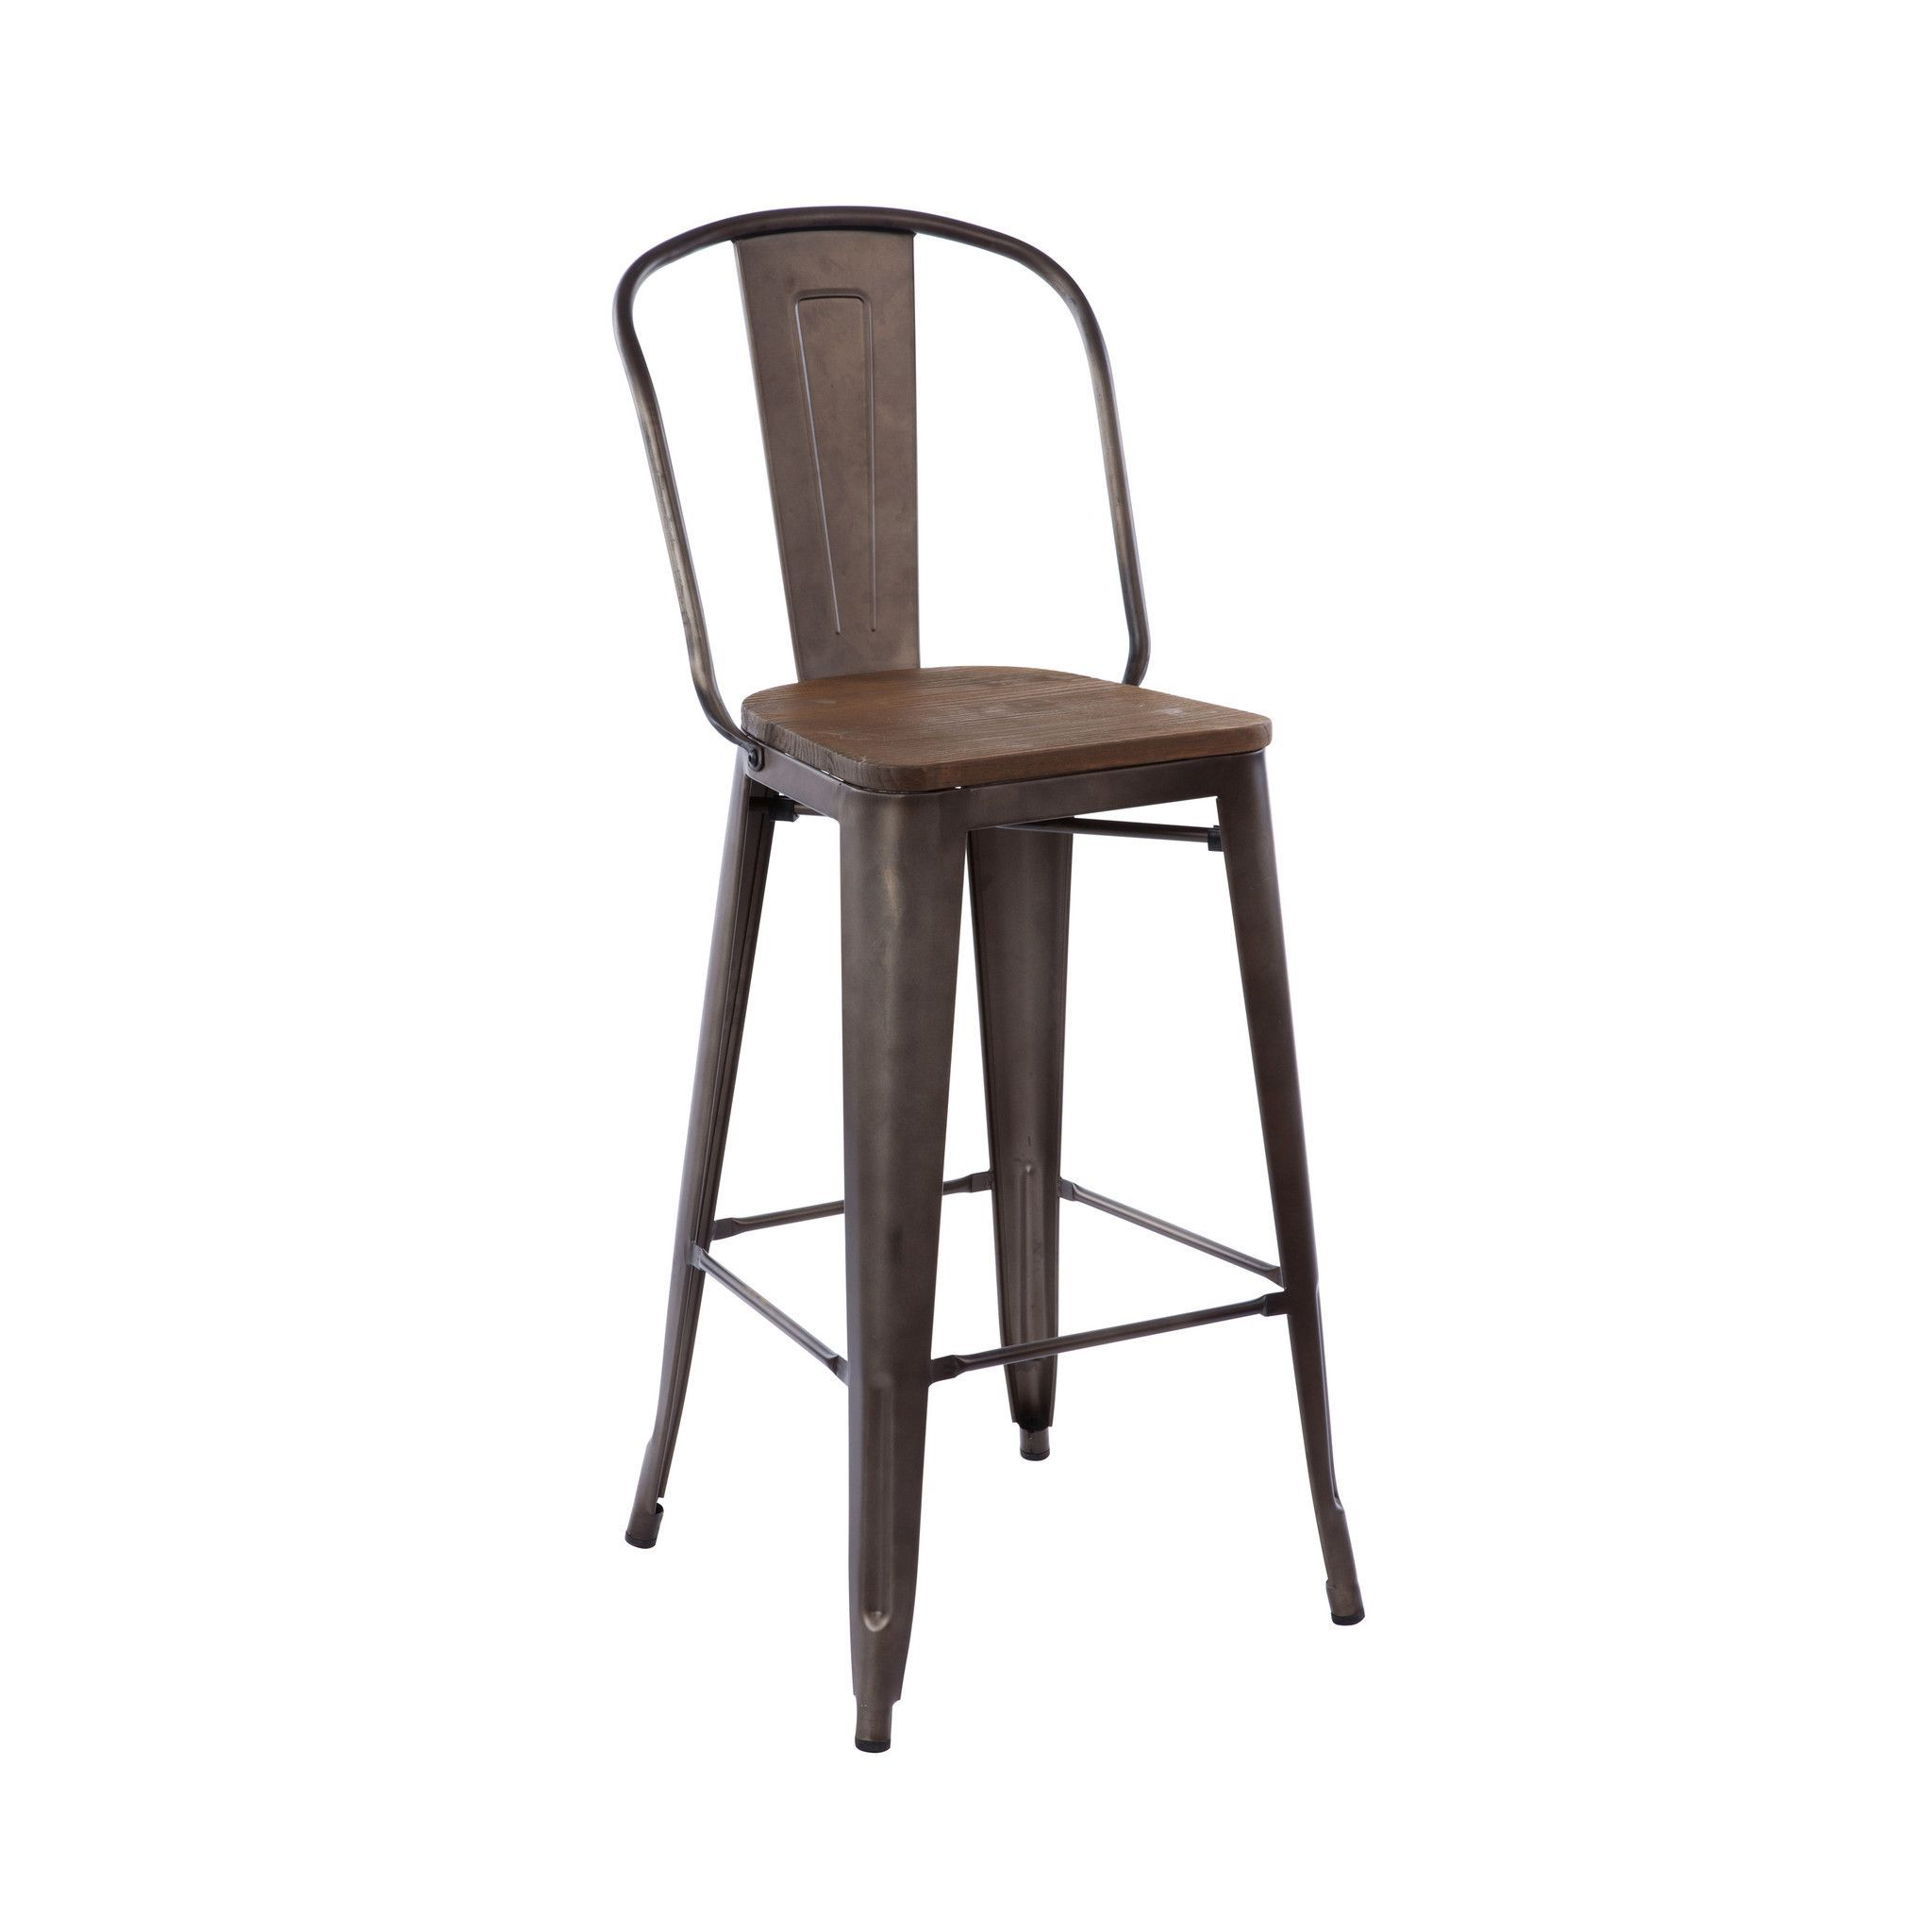 Dreux Rustic Matte Elm Wood Seat Steel Bar Chair 30 Set Of 4